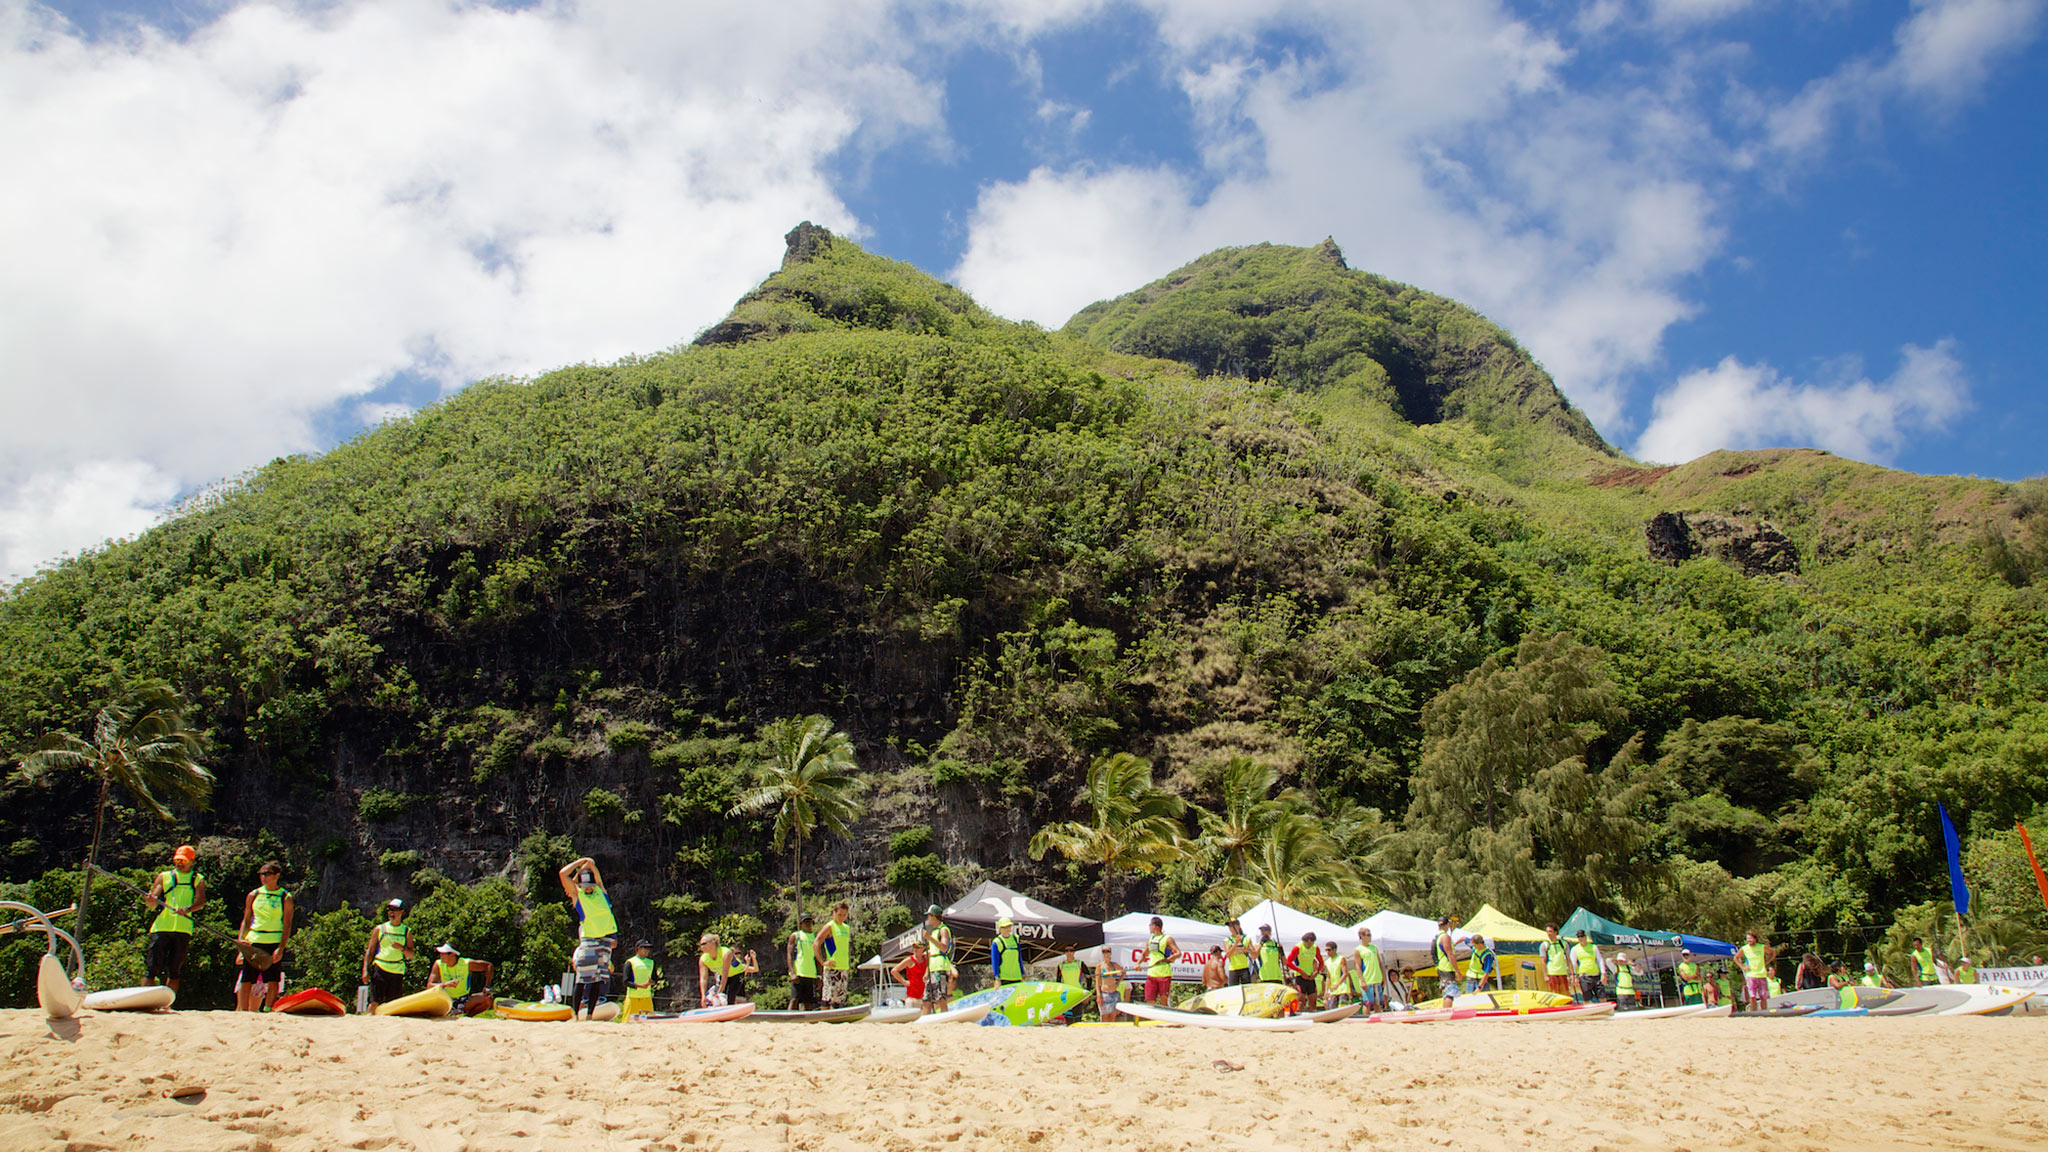 Racers prepare for an arduous -- and beautiful -- 17-mile stand-up paddleboard adventure along the Na Pali coast of Hawaii.